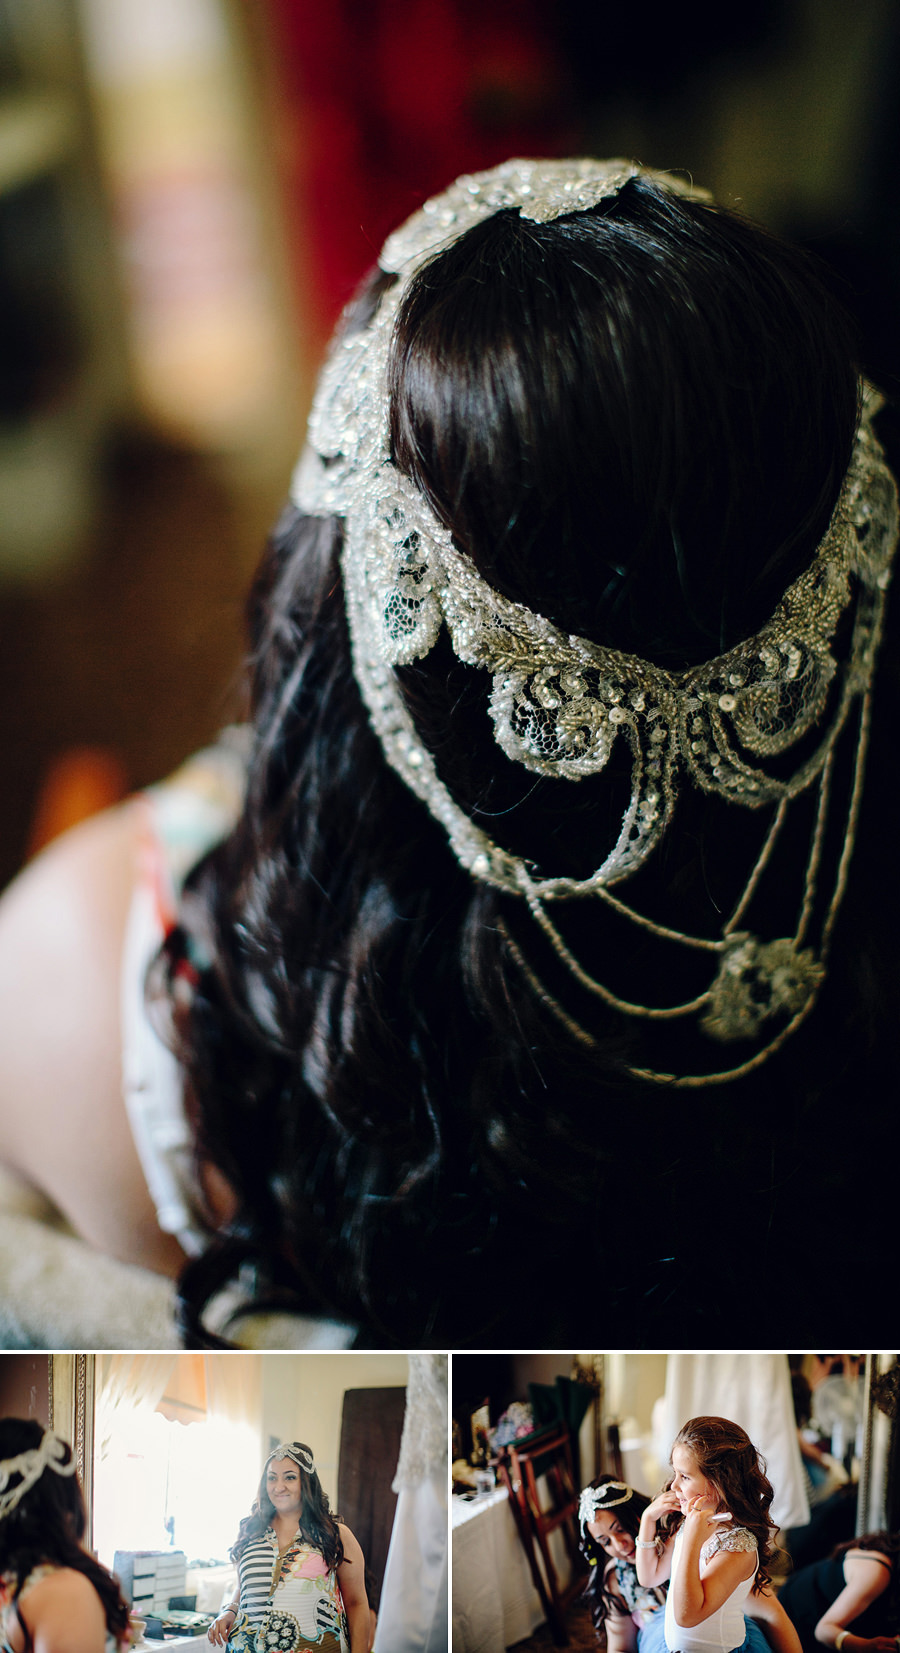 Marouba Wedding Photography: Bridal headpiece